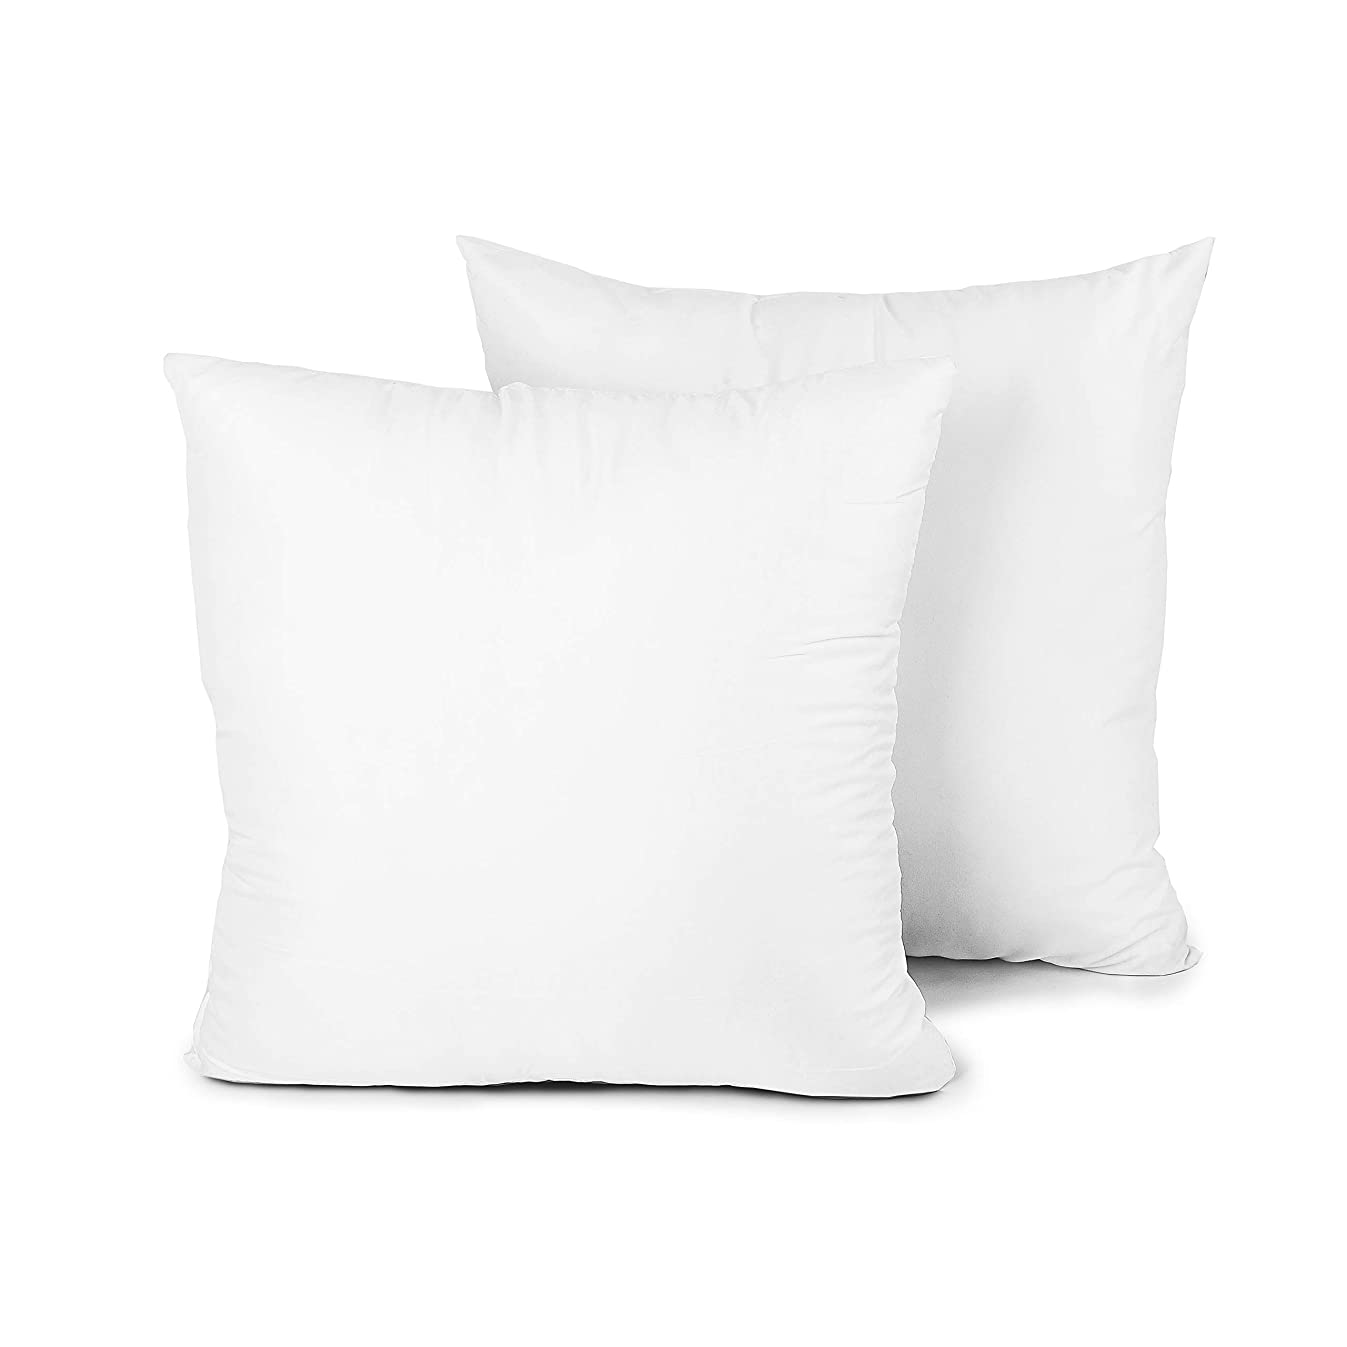 Throw Pillow Insert,Edow set of 2 Hypoallergenic Down Alternative Polyester Square Form Decorative Pillow, Cushion,Sham Stuffer,18 x 18 inches.